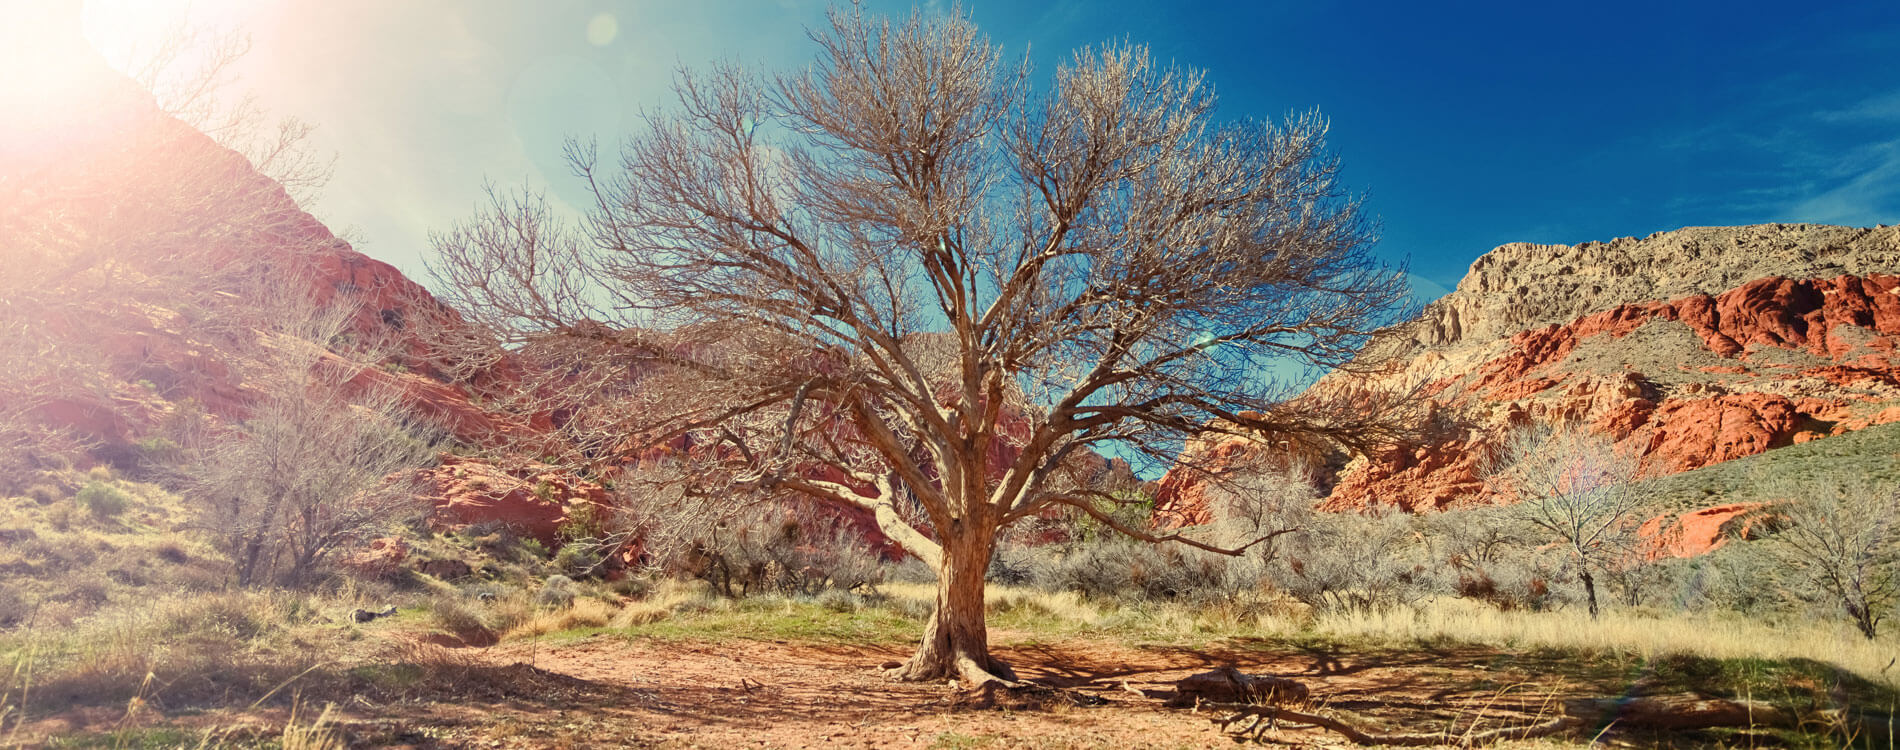 Tree in dry desert